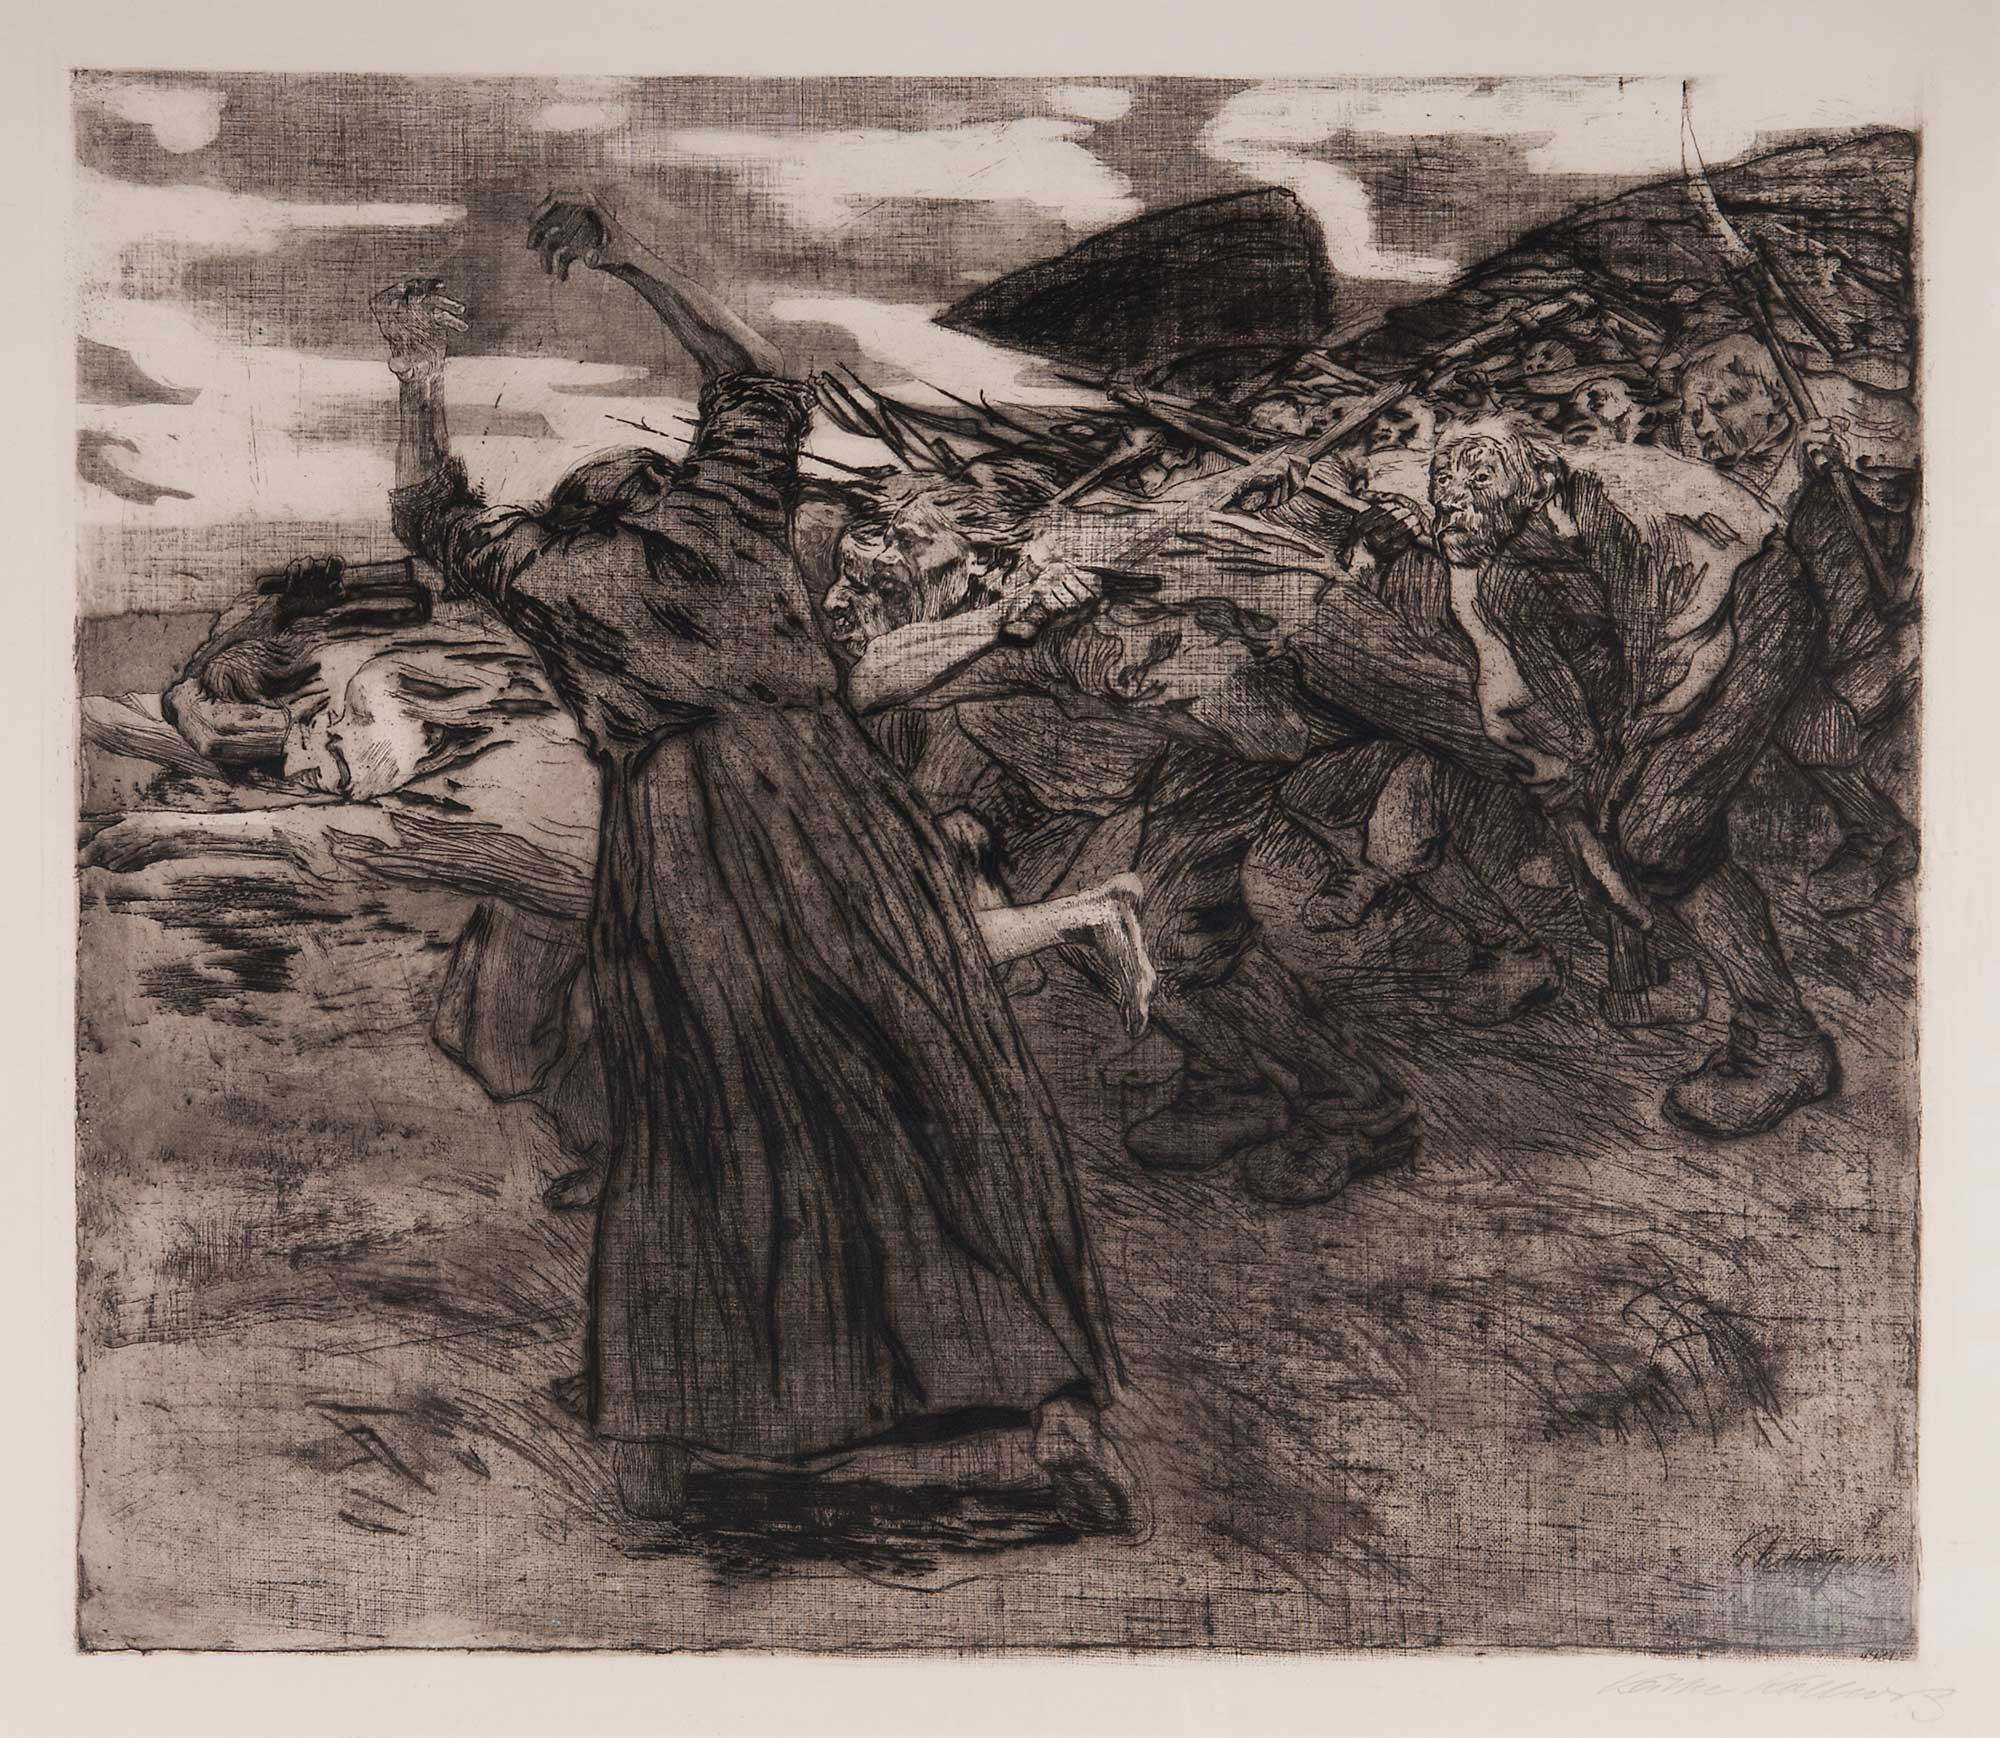 Print depicting a scene of a revolt